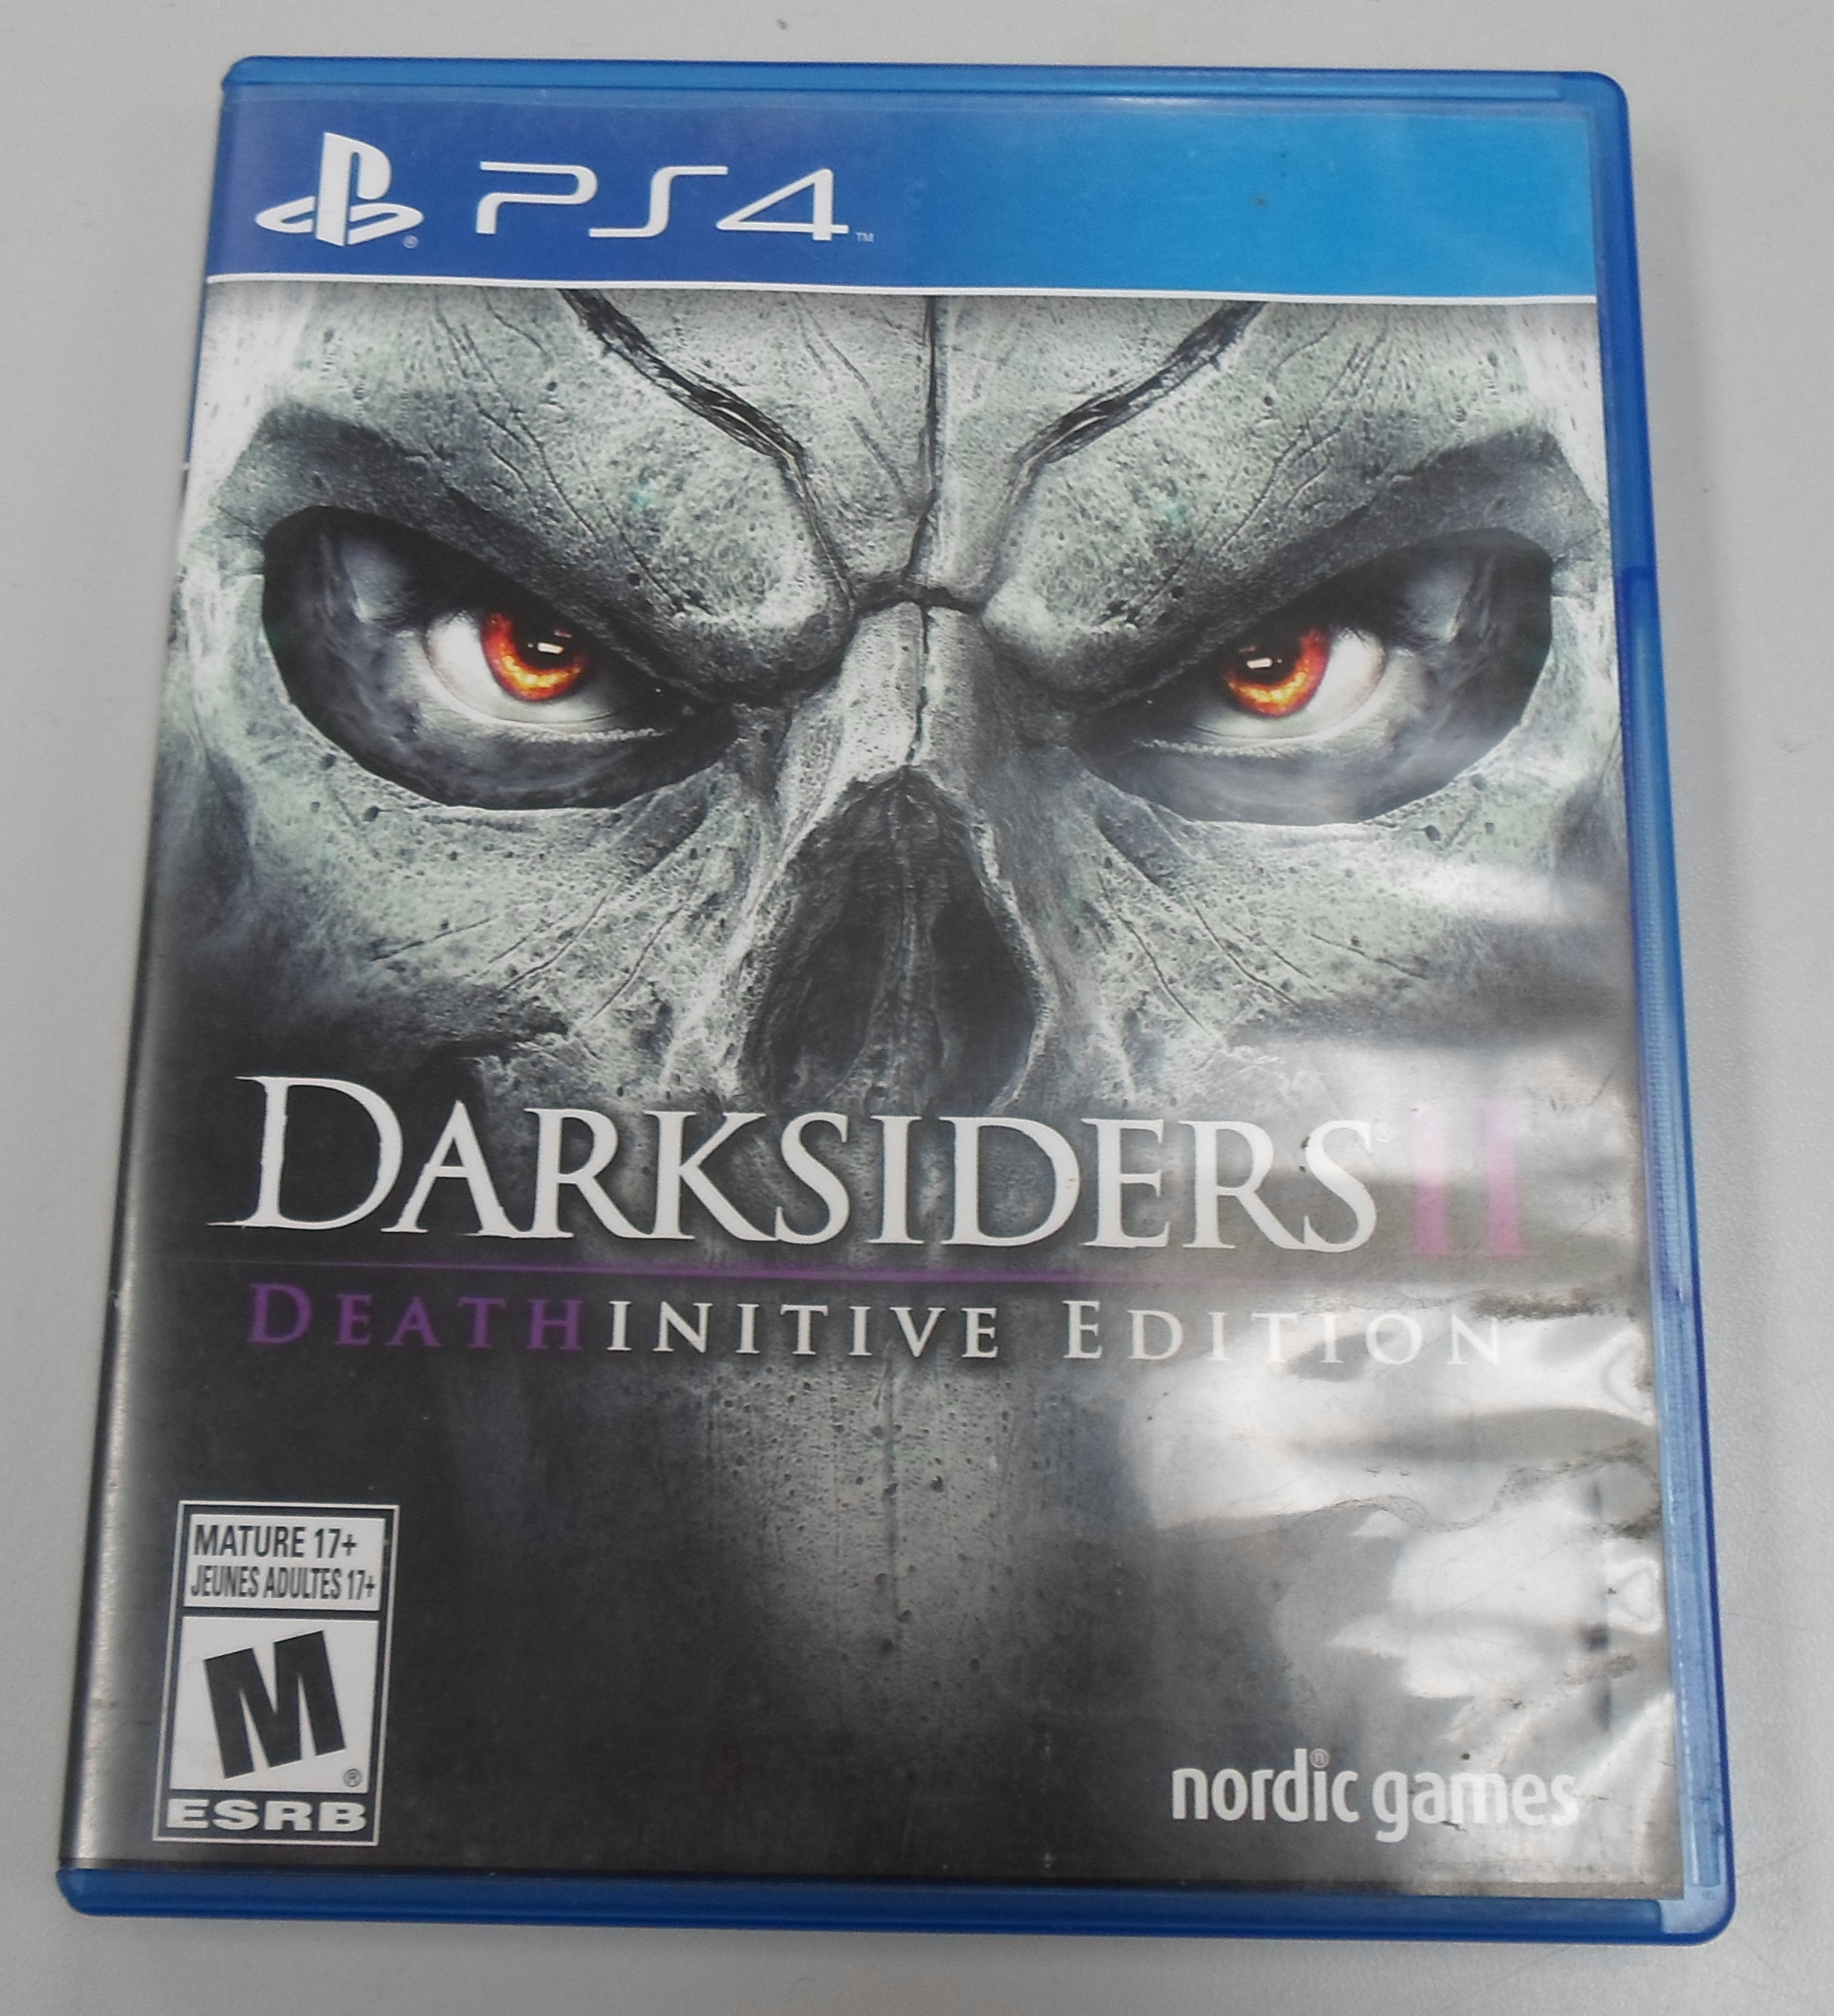 DARKSIDERS 2 DEATHINITIVE EDITION - PLAYSTATION 4 GAME